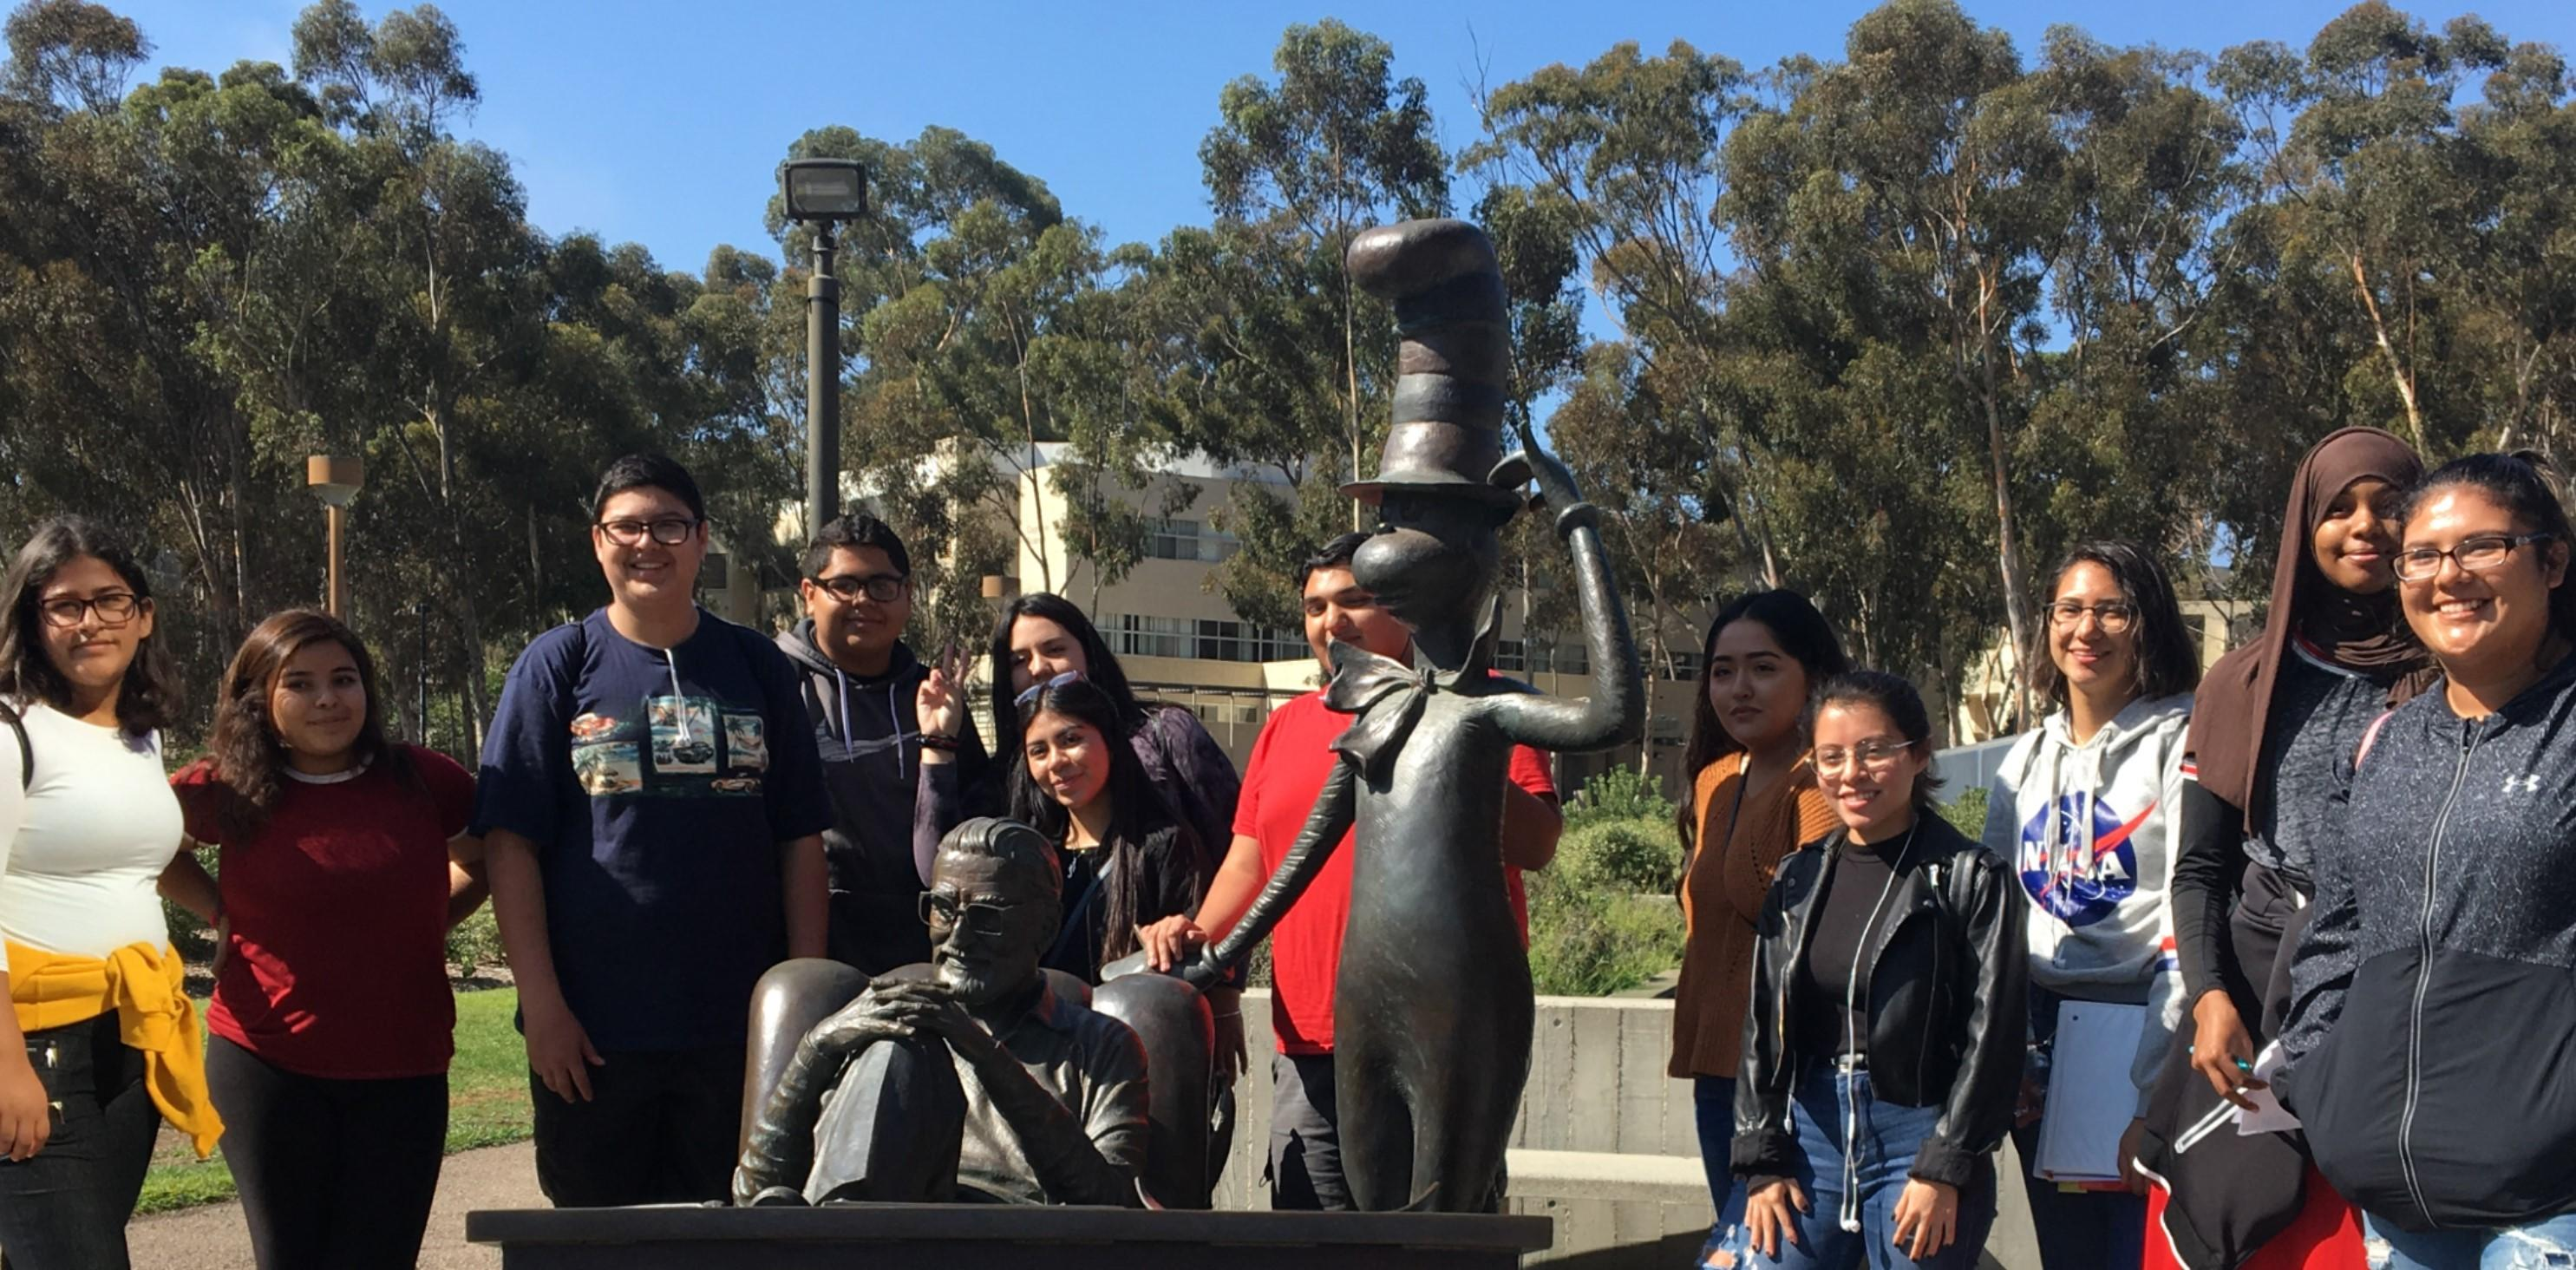 Students at Dr. Seuss statue at UCSD.